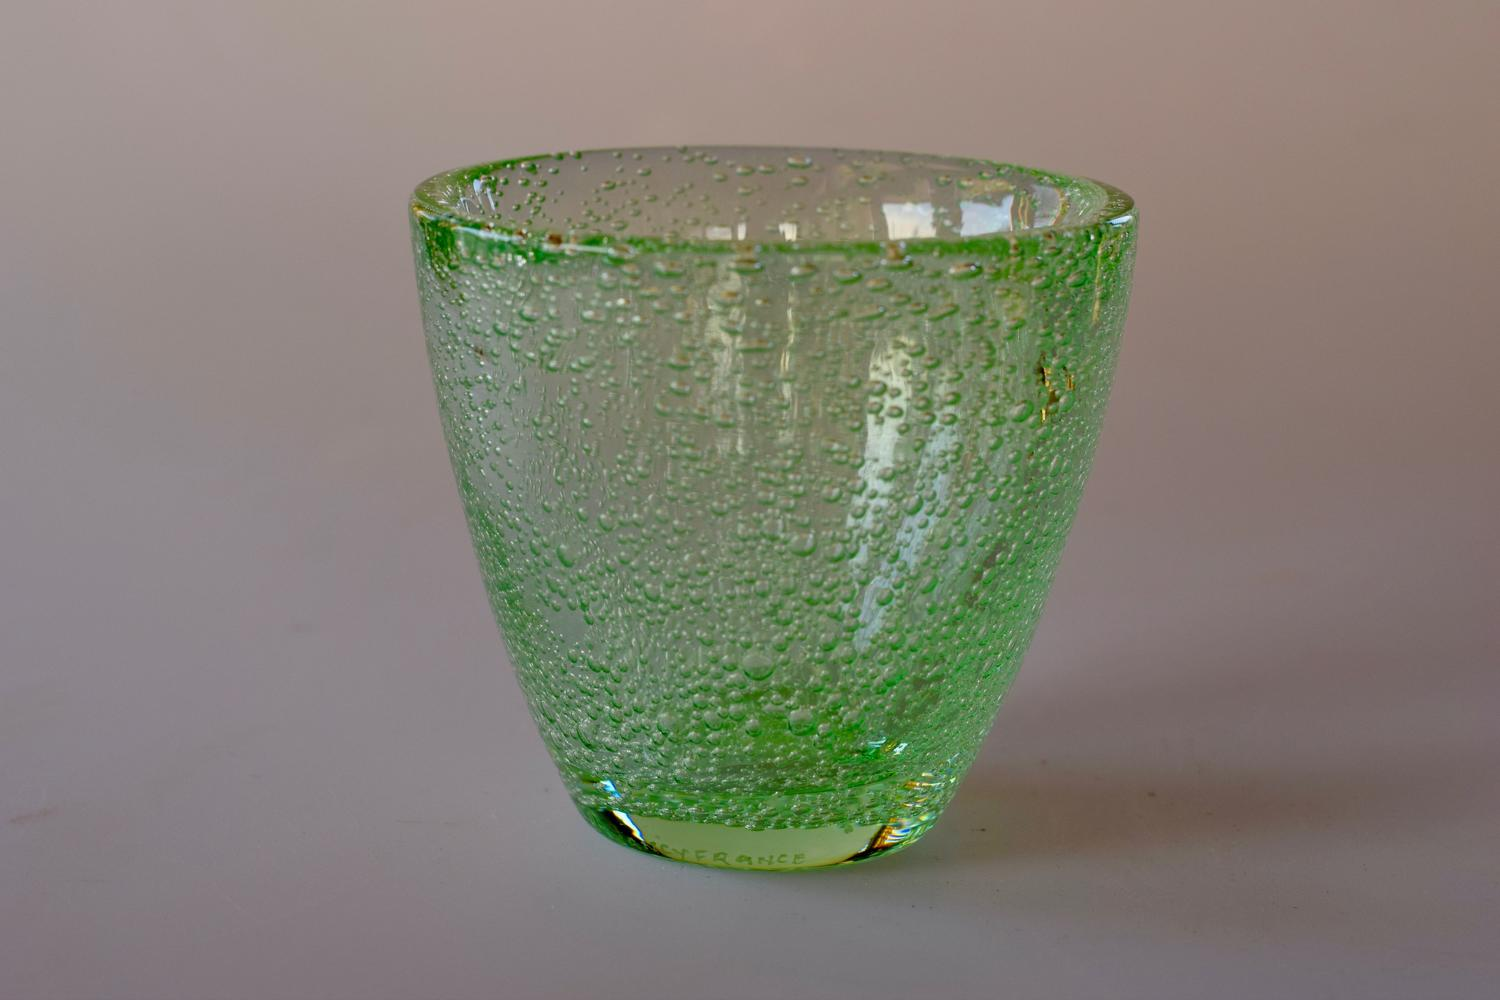 Green bubble Daum bowl